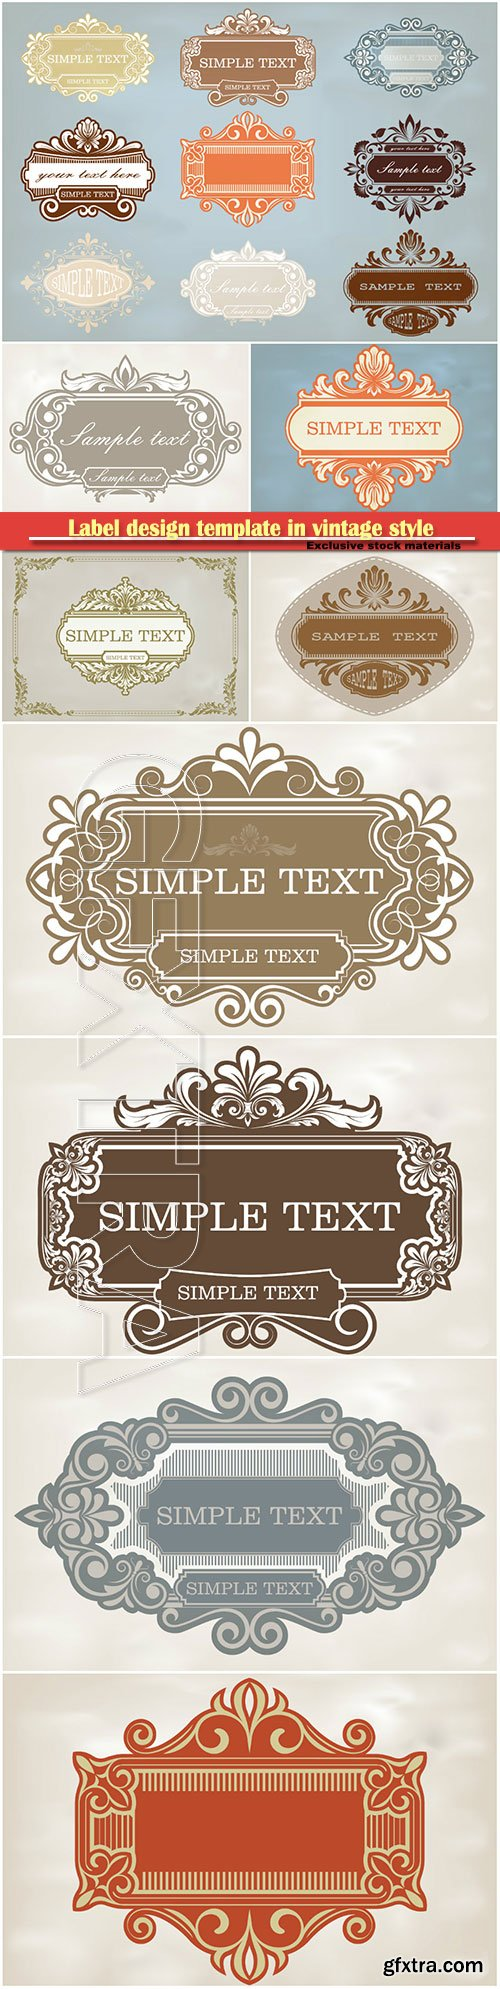 Label design template in vintage style, decorative frame, ornament vector